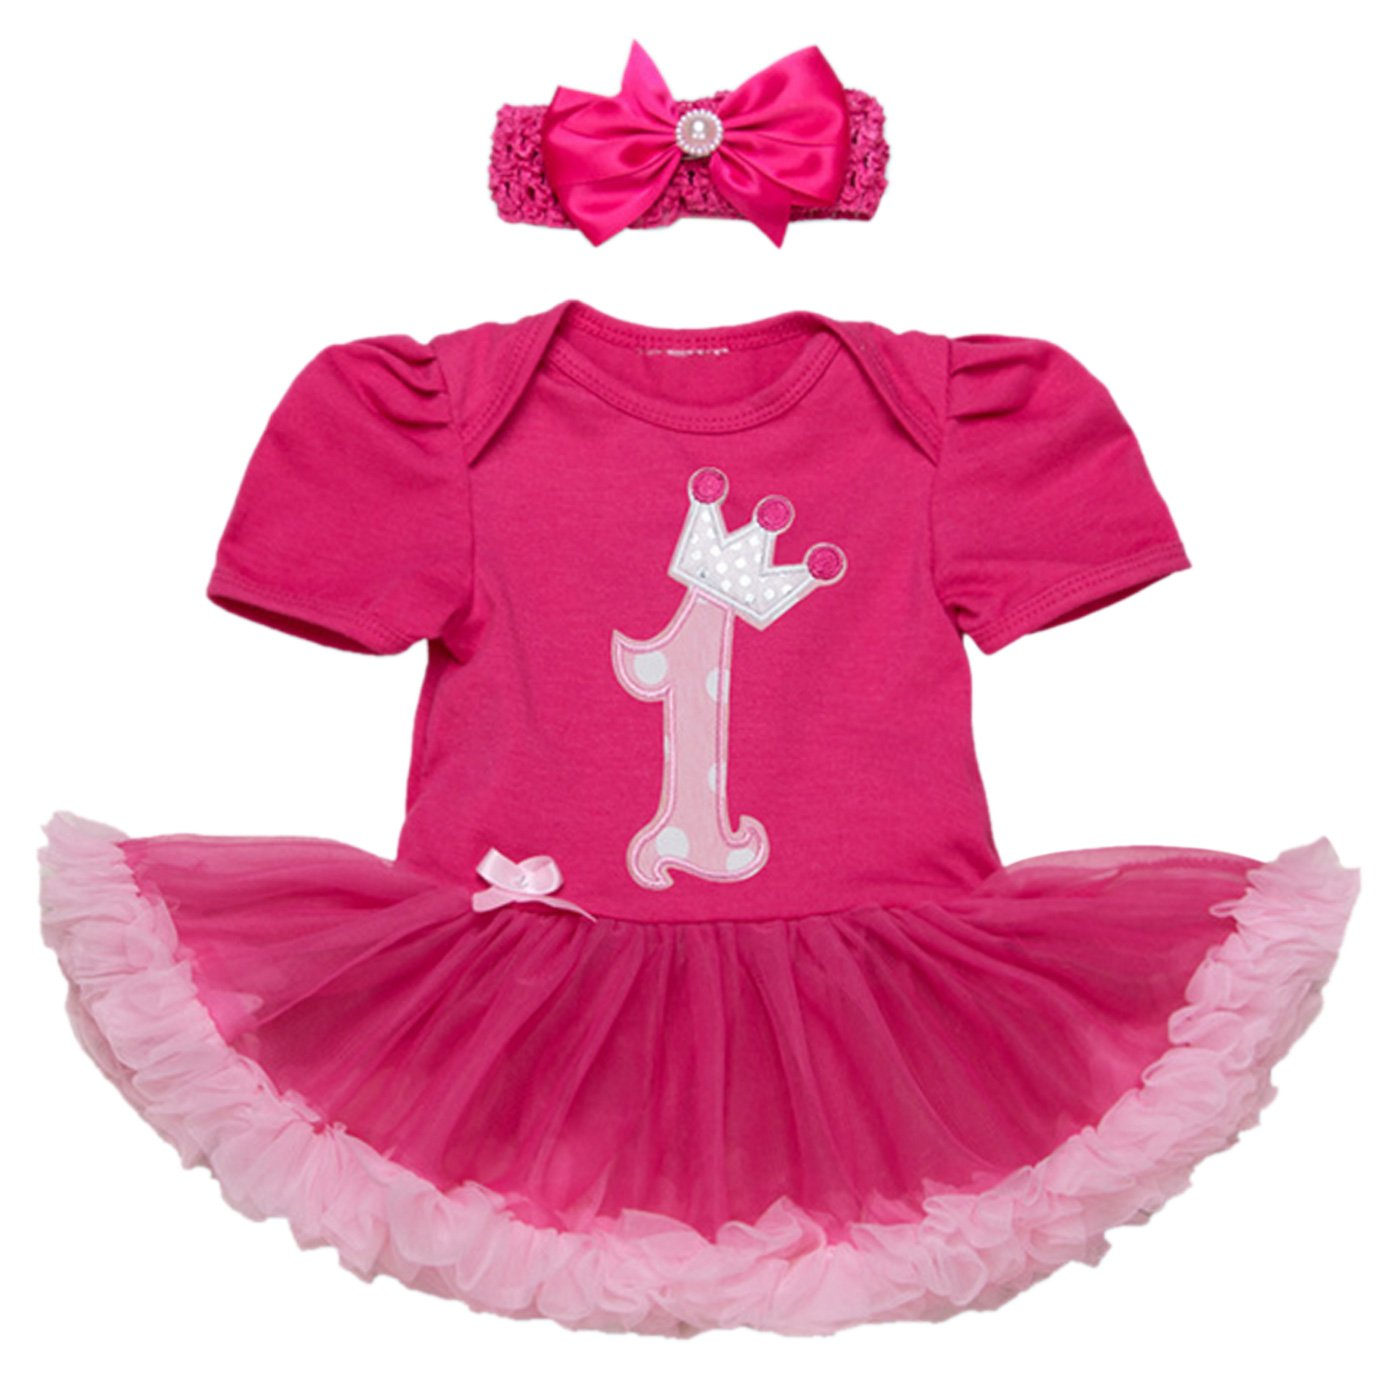 Newborn Baby Girls Print Pattern Birthday Tutu Party Dress Romper Bowknot Headband Set - Crown, Rose Red(1 Year) Size XL Feoya